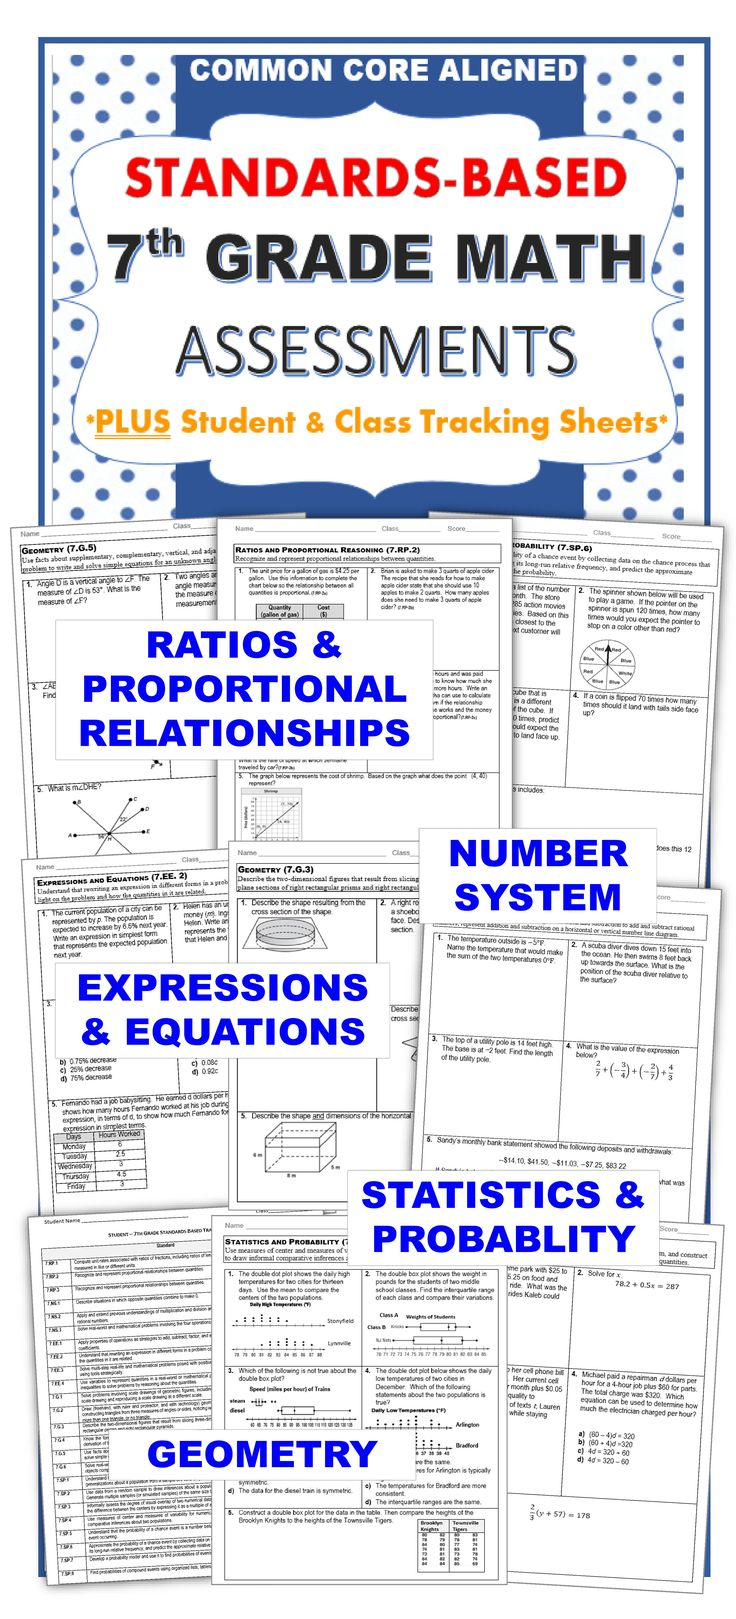 7th Grade Math Standards Based Assessments * All Standards * {Common Core} Includes a 1 page quick assessment for every common core math standard for 7th grade, a student checklist for each domain and a class tracking sheet.  Perfect for homework, assessments, test prep, group work or math centers!   Common Core aligned: Ratios and Proportional Reasoning (7RP), The Number System (7NS), Expressions and Equations (7EE), Geometry (7G),  Statistics and Probability (7SP)